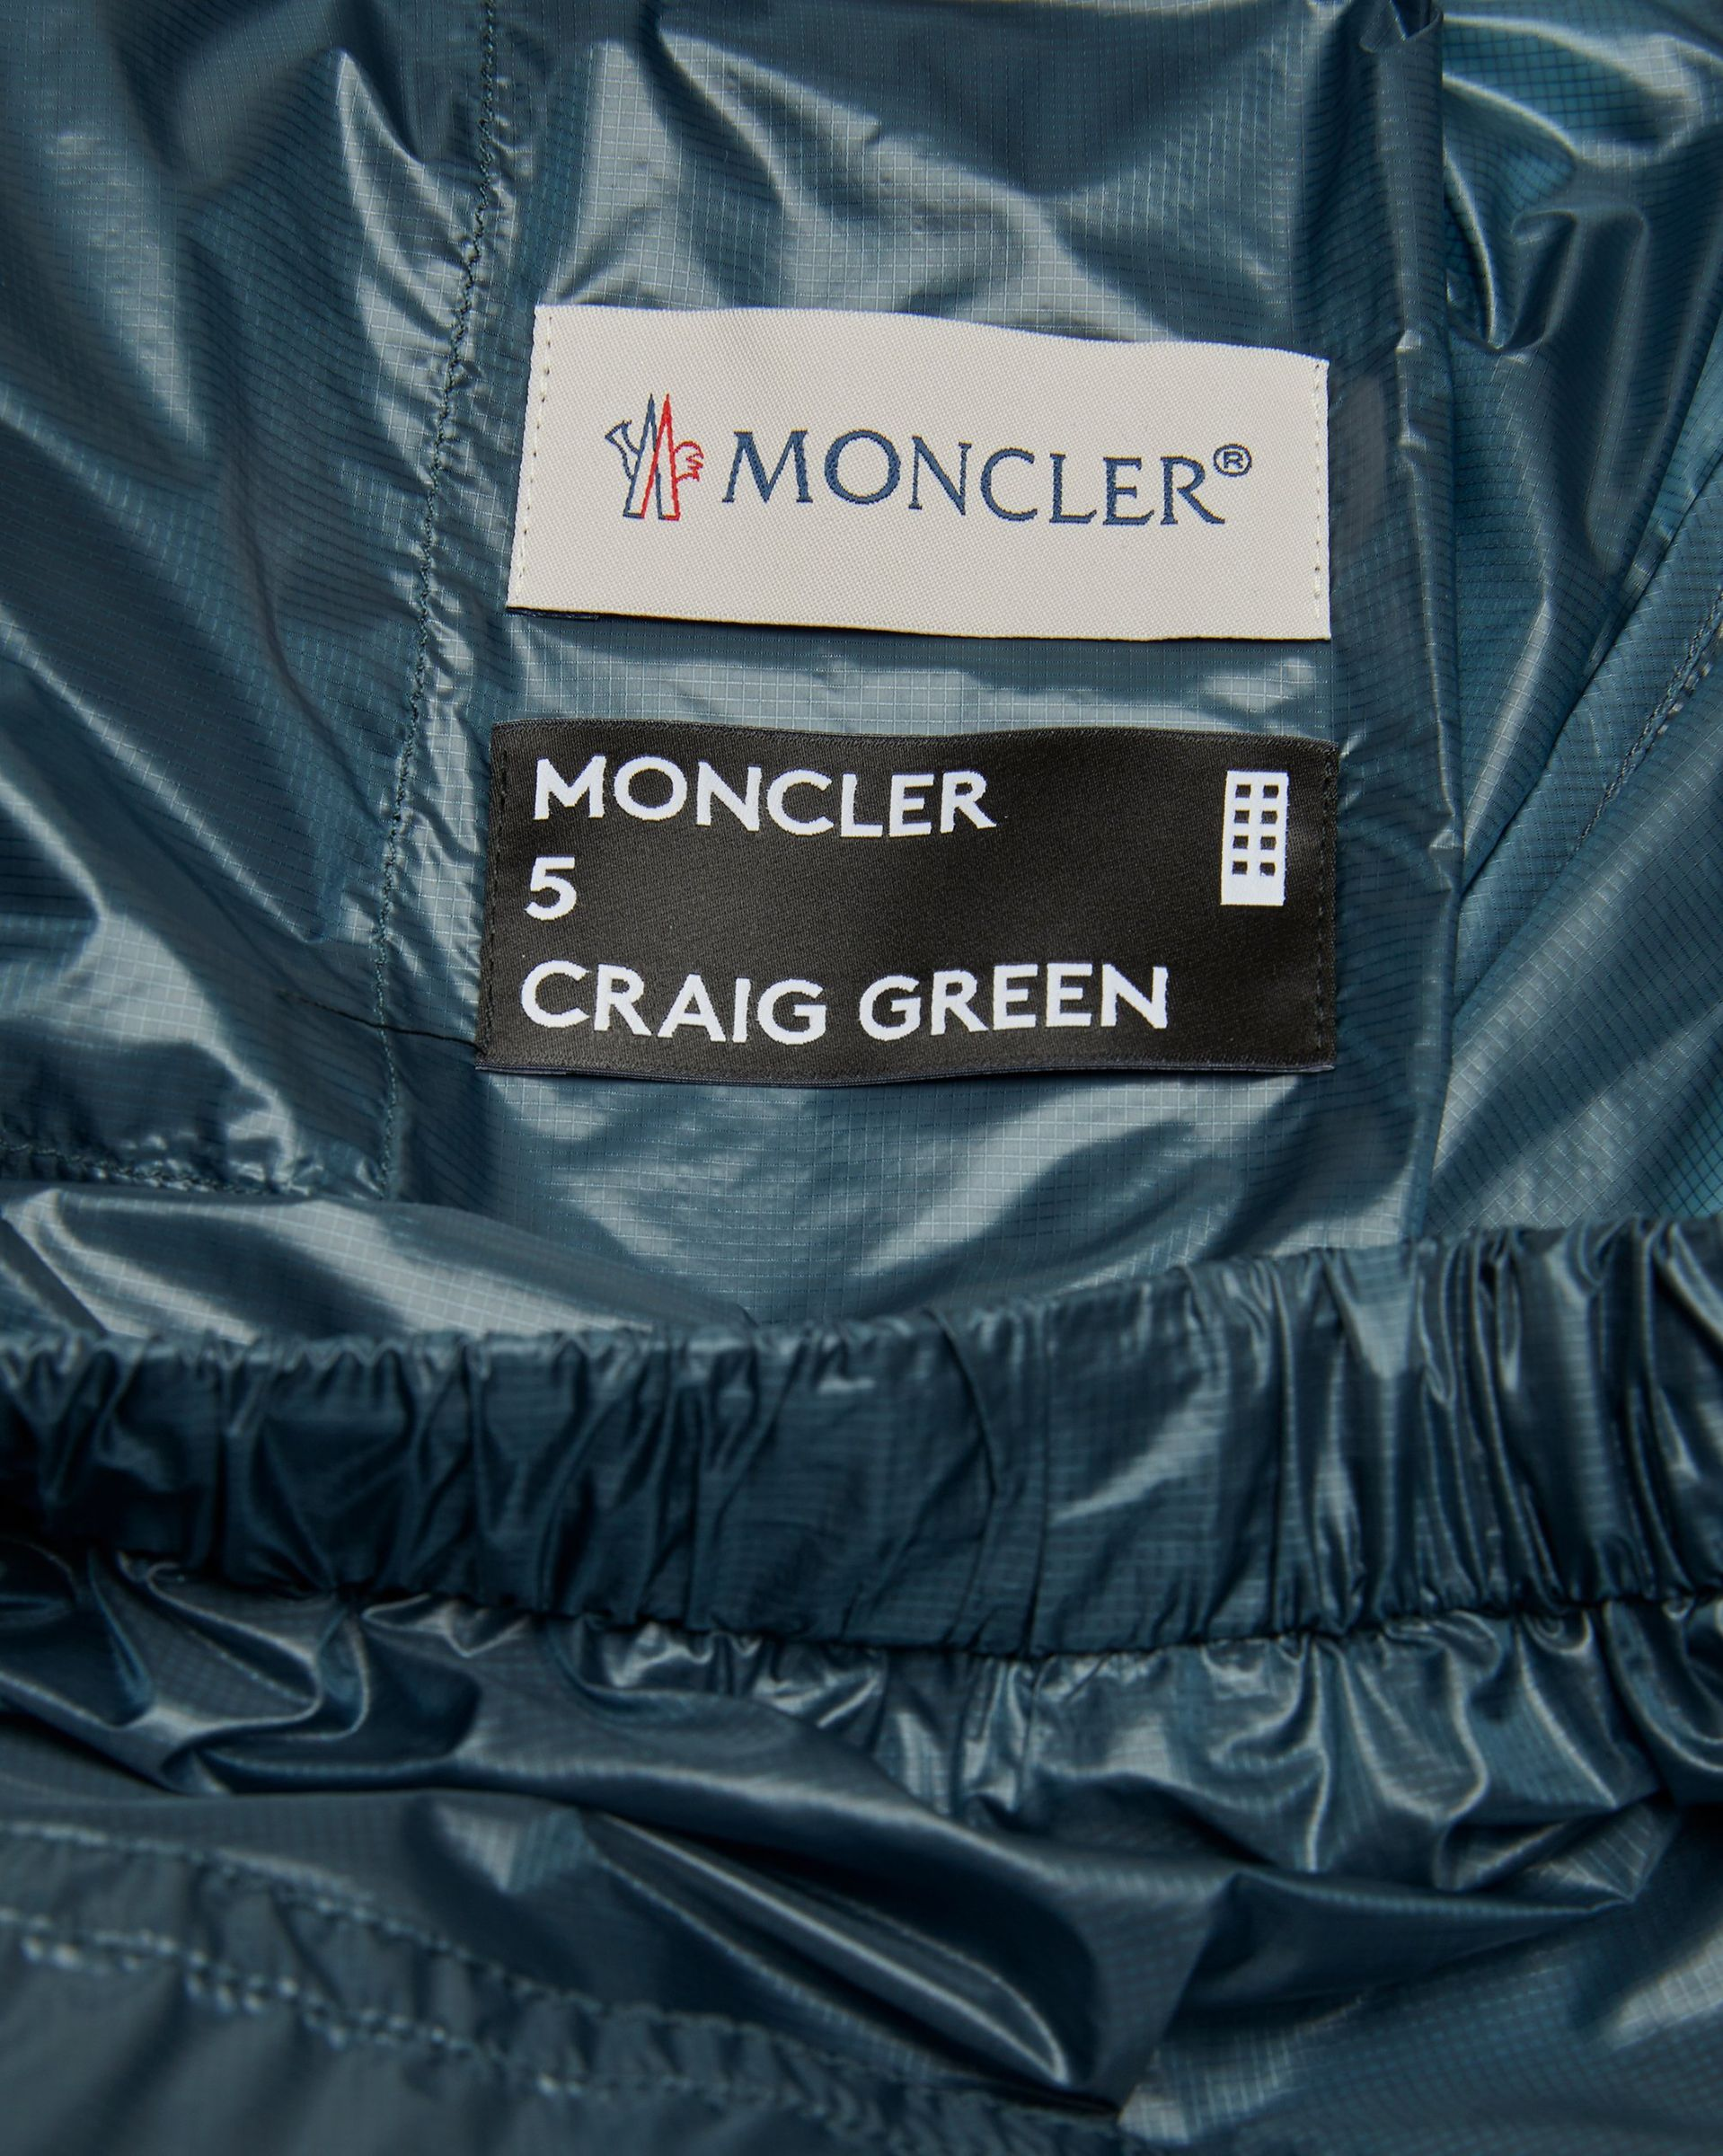 5 Moncler Craig Green - Trousers Grey/Blue - Image 4